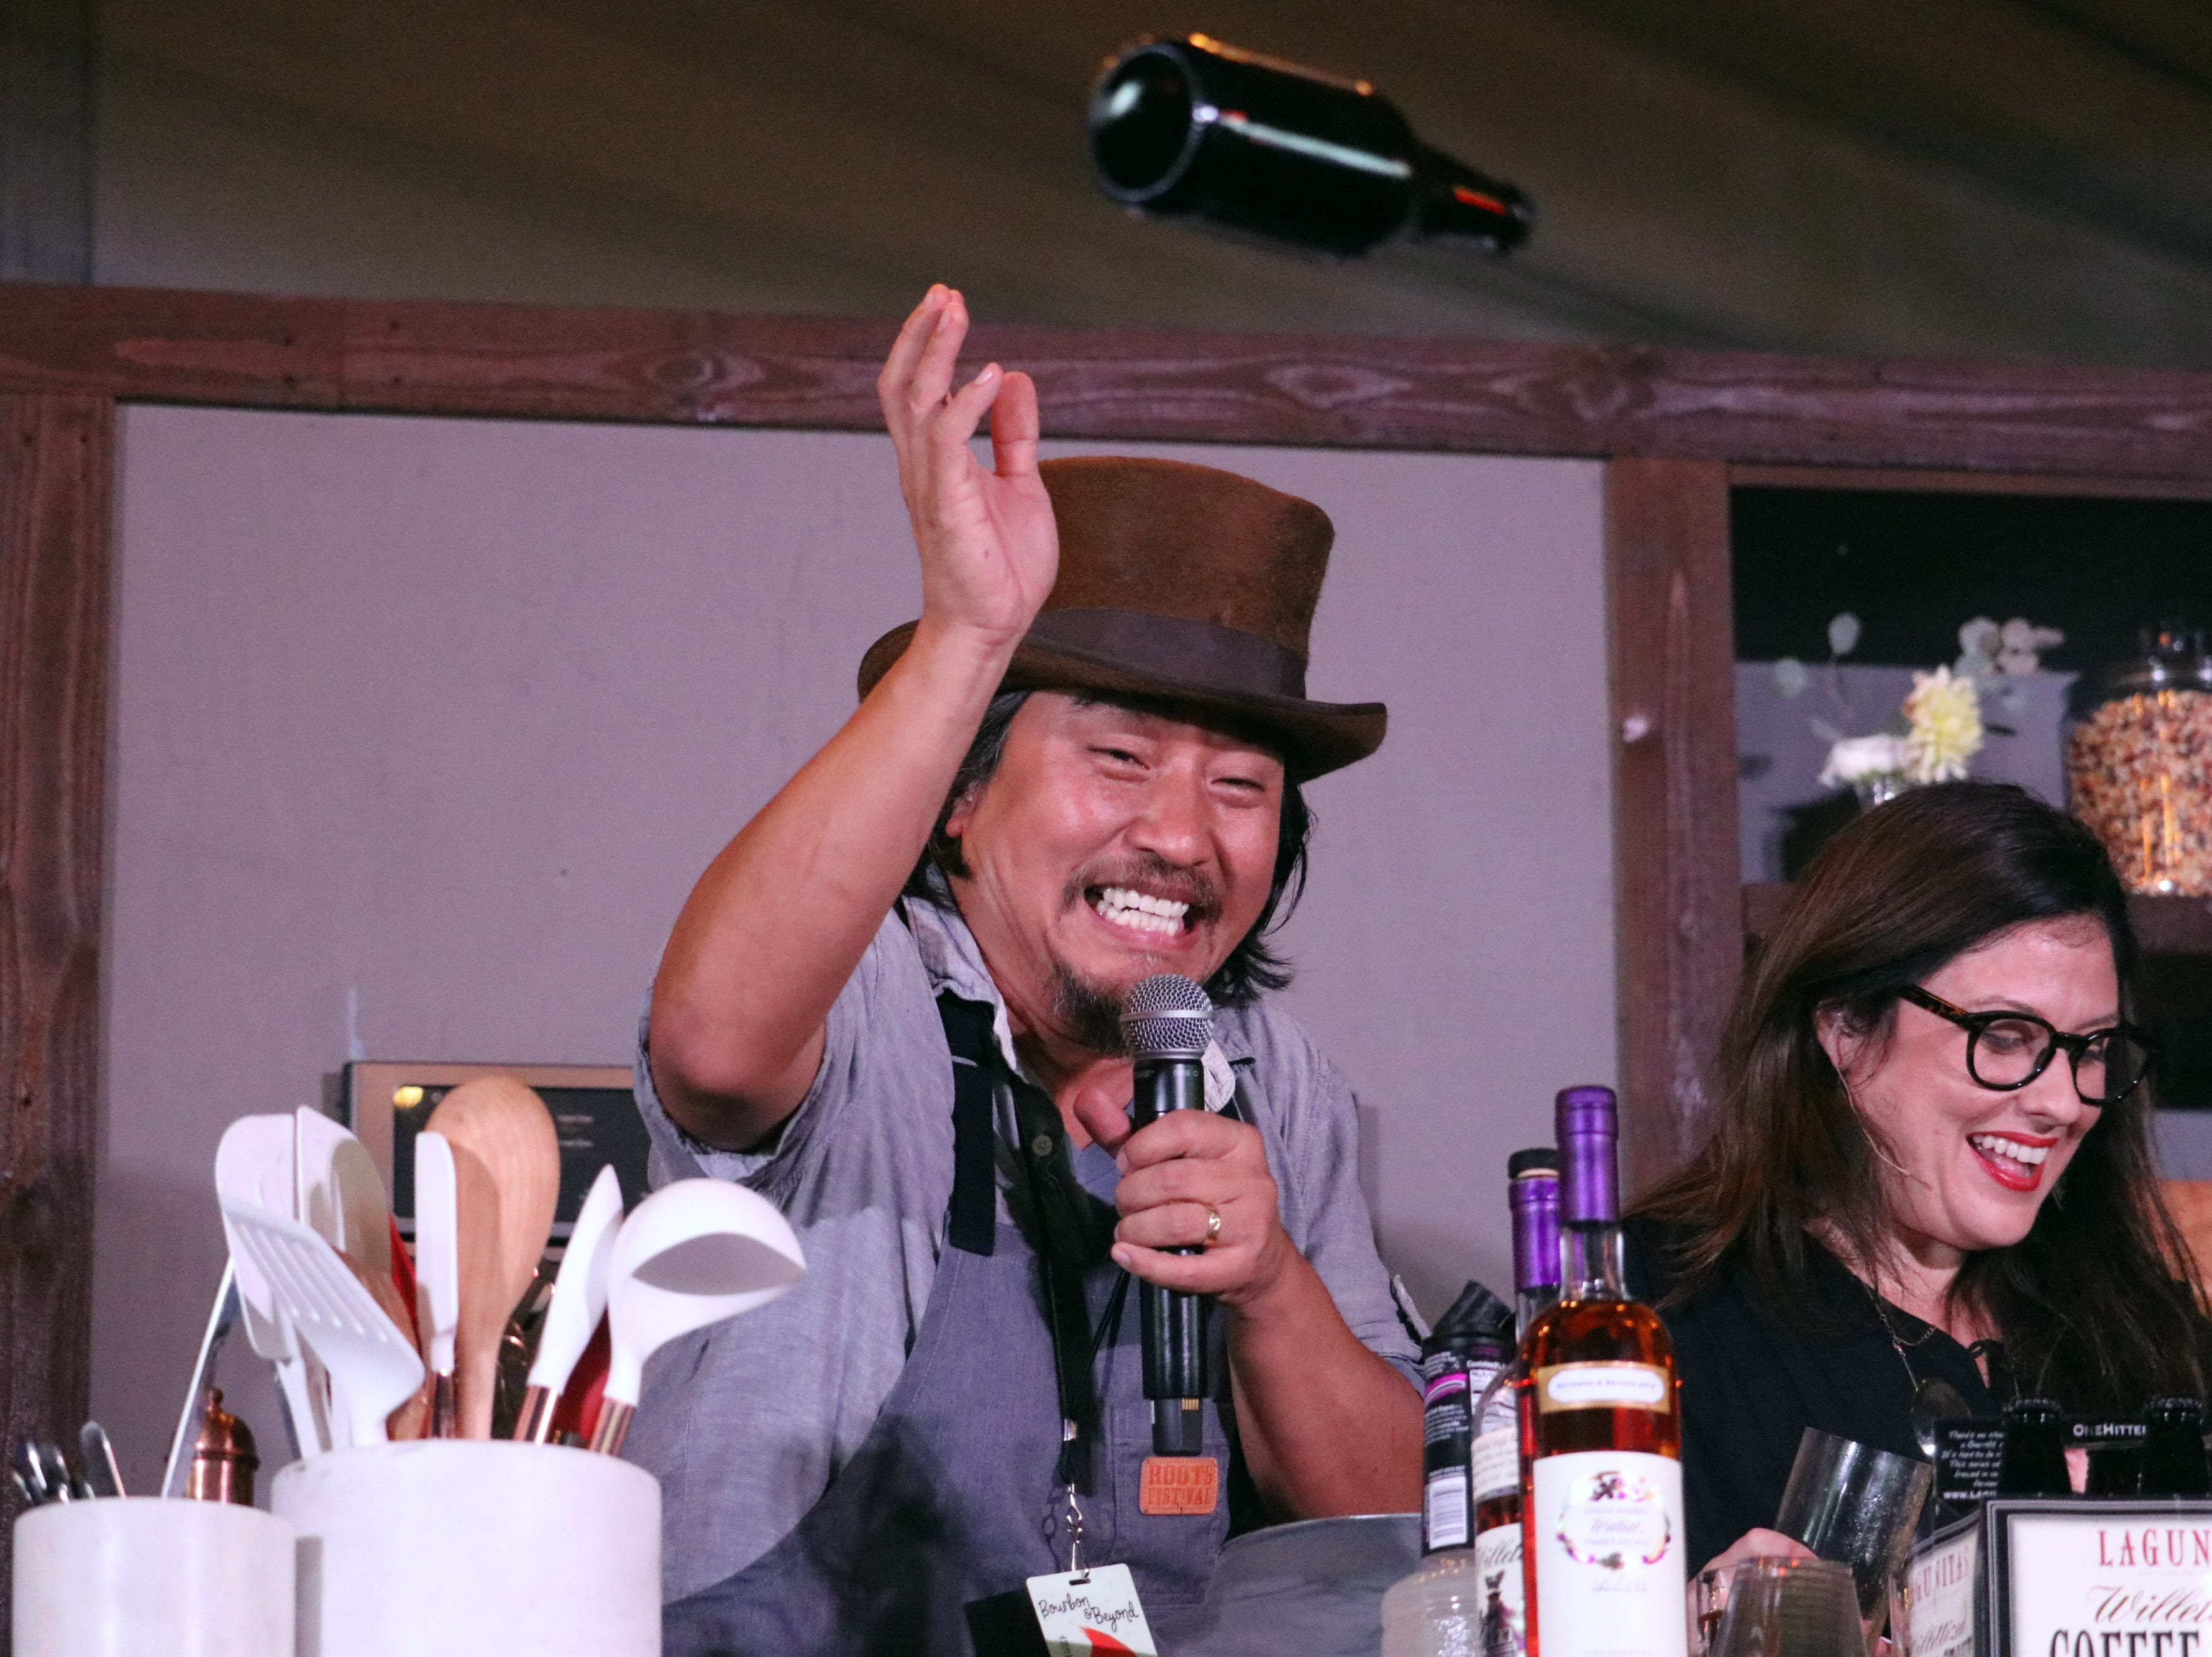 Chef Edward Lee tosses a bottle of beer into the audience during a cooking demonstration at the 2018 Bourbon & Beyond festival.